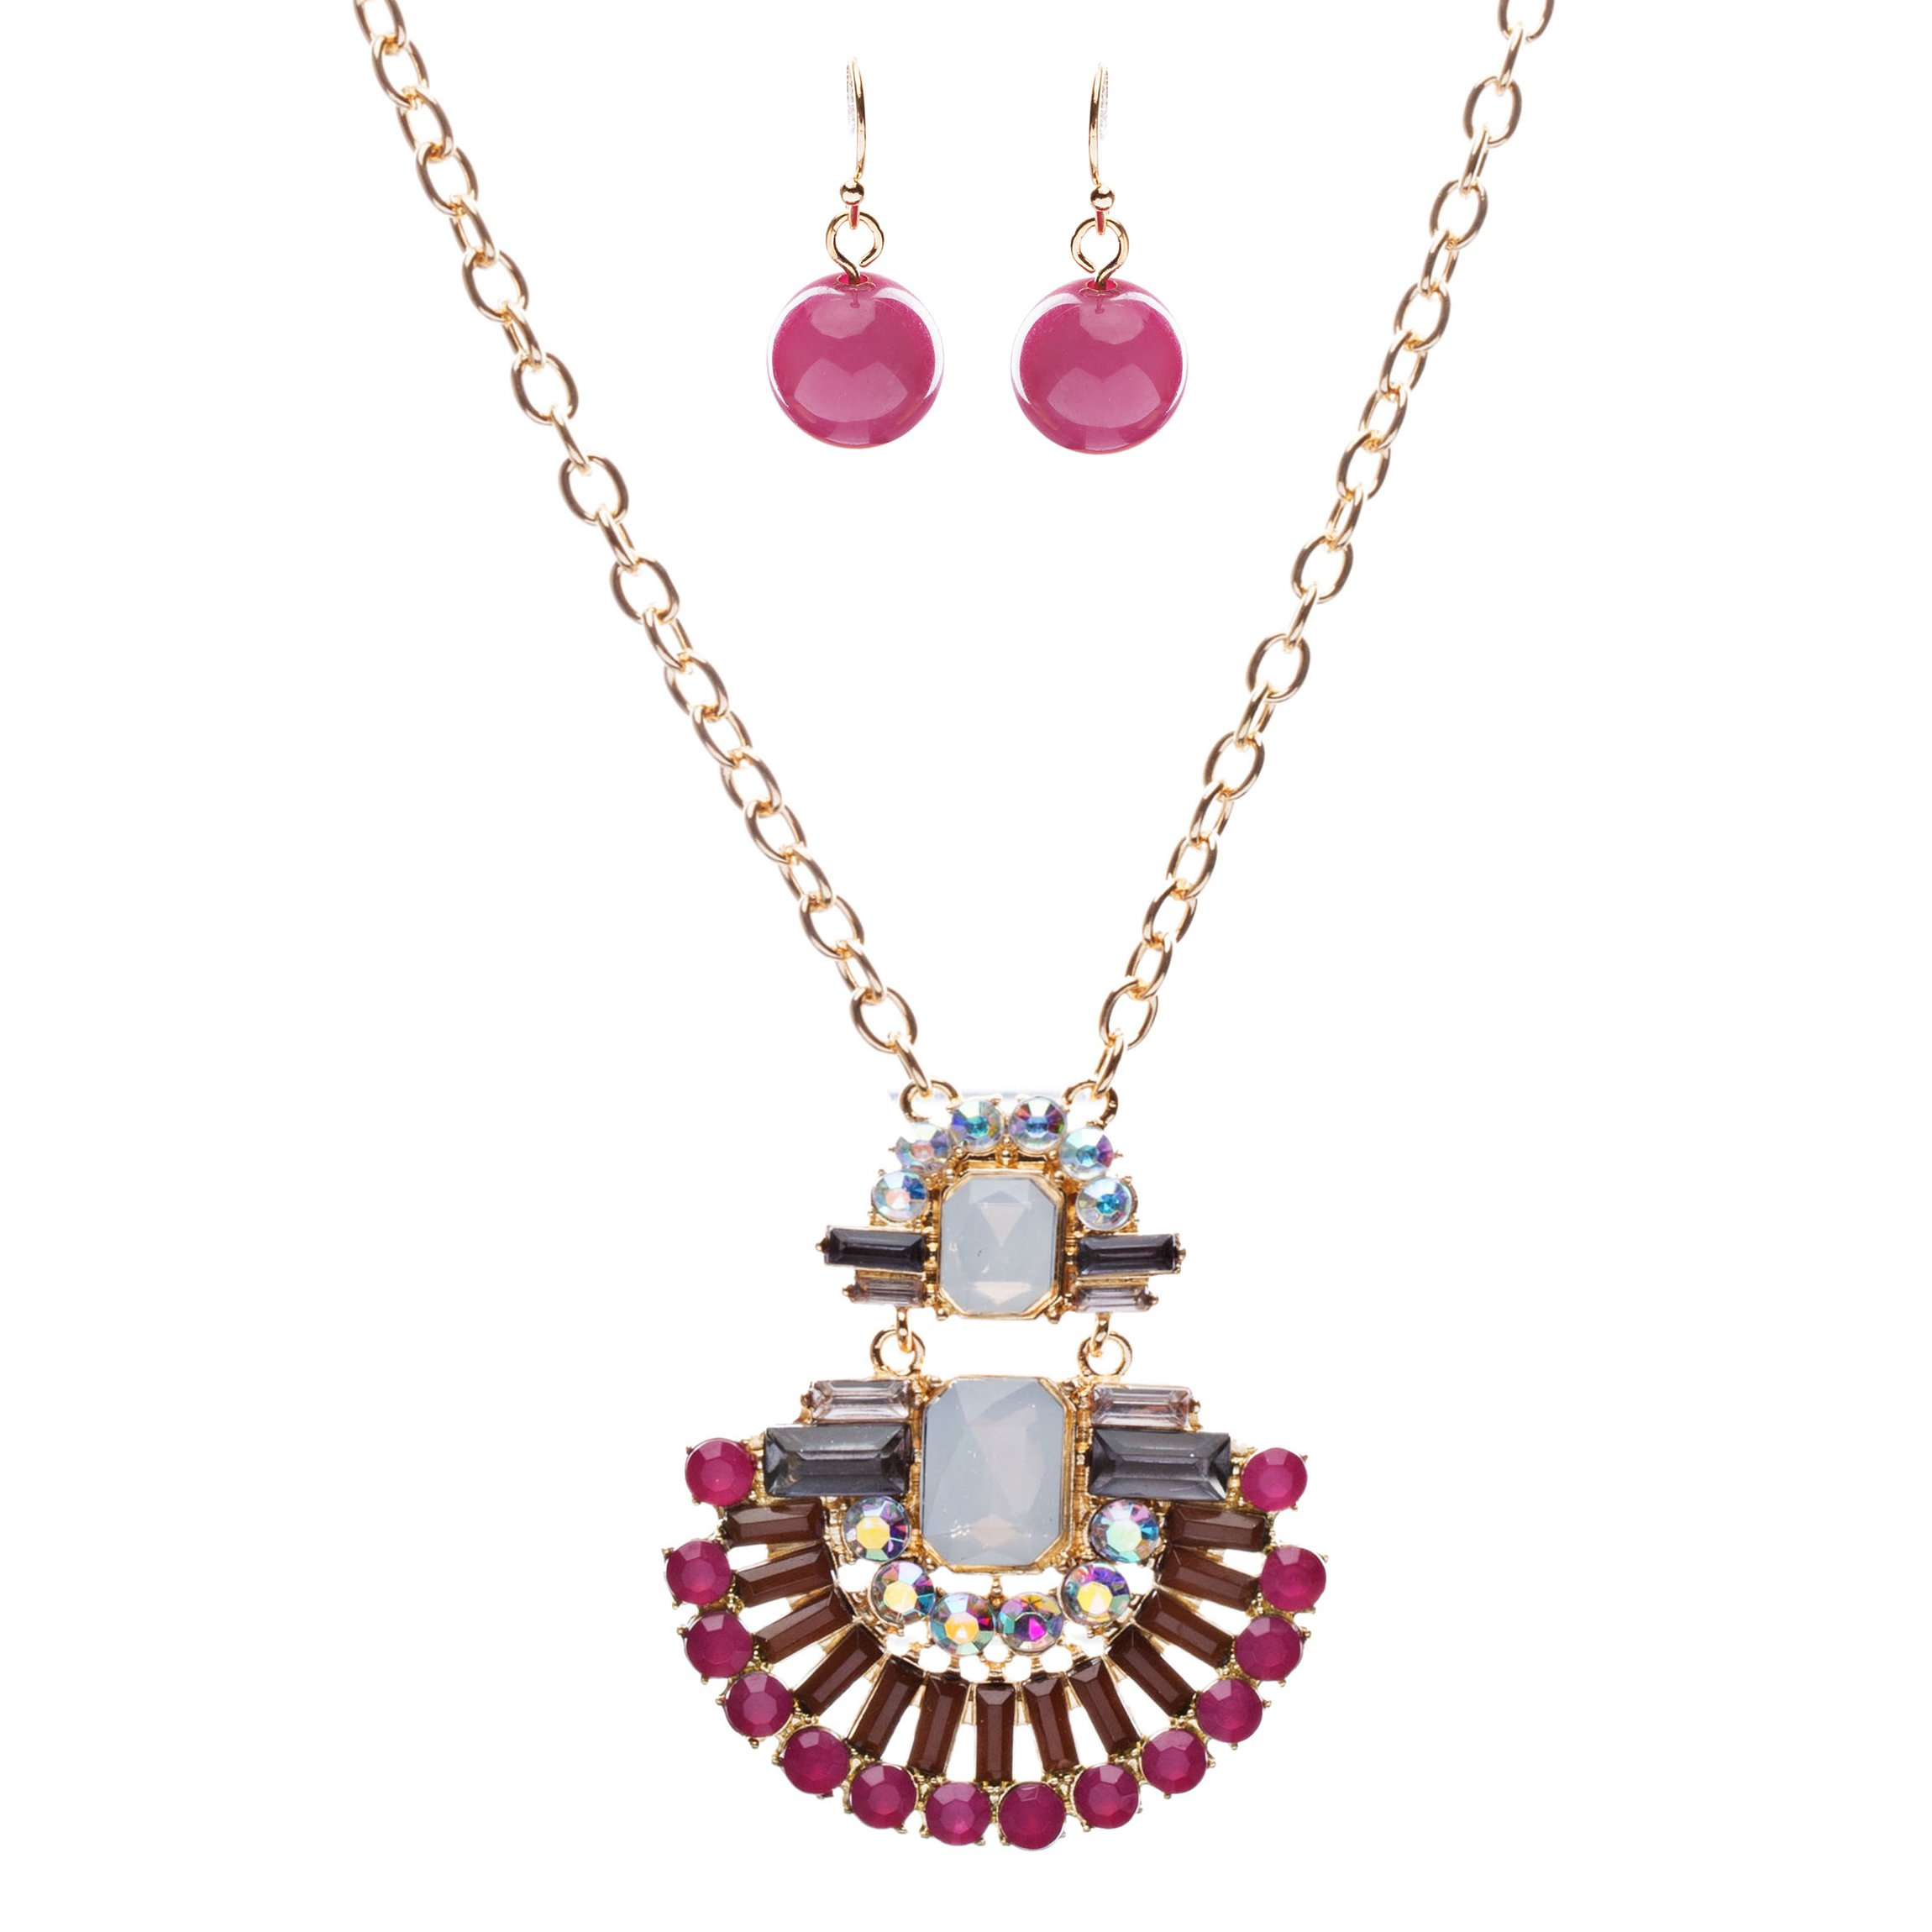 Unique Fashion Crystal Rhinestone Fan Charm Necklace And Earrings JN222 Pink